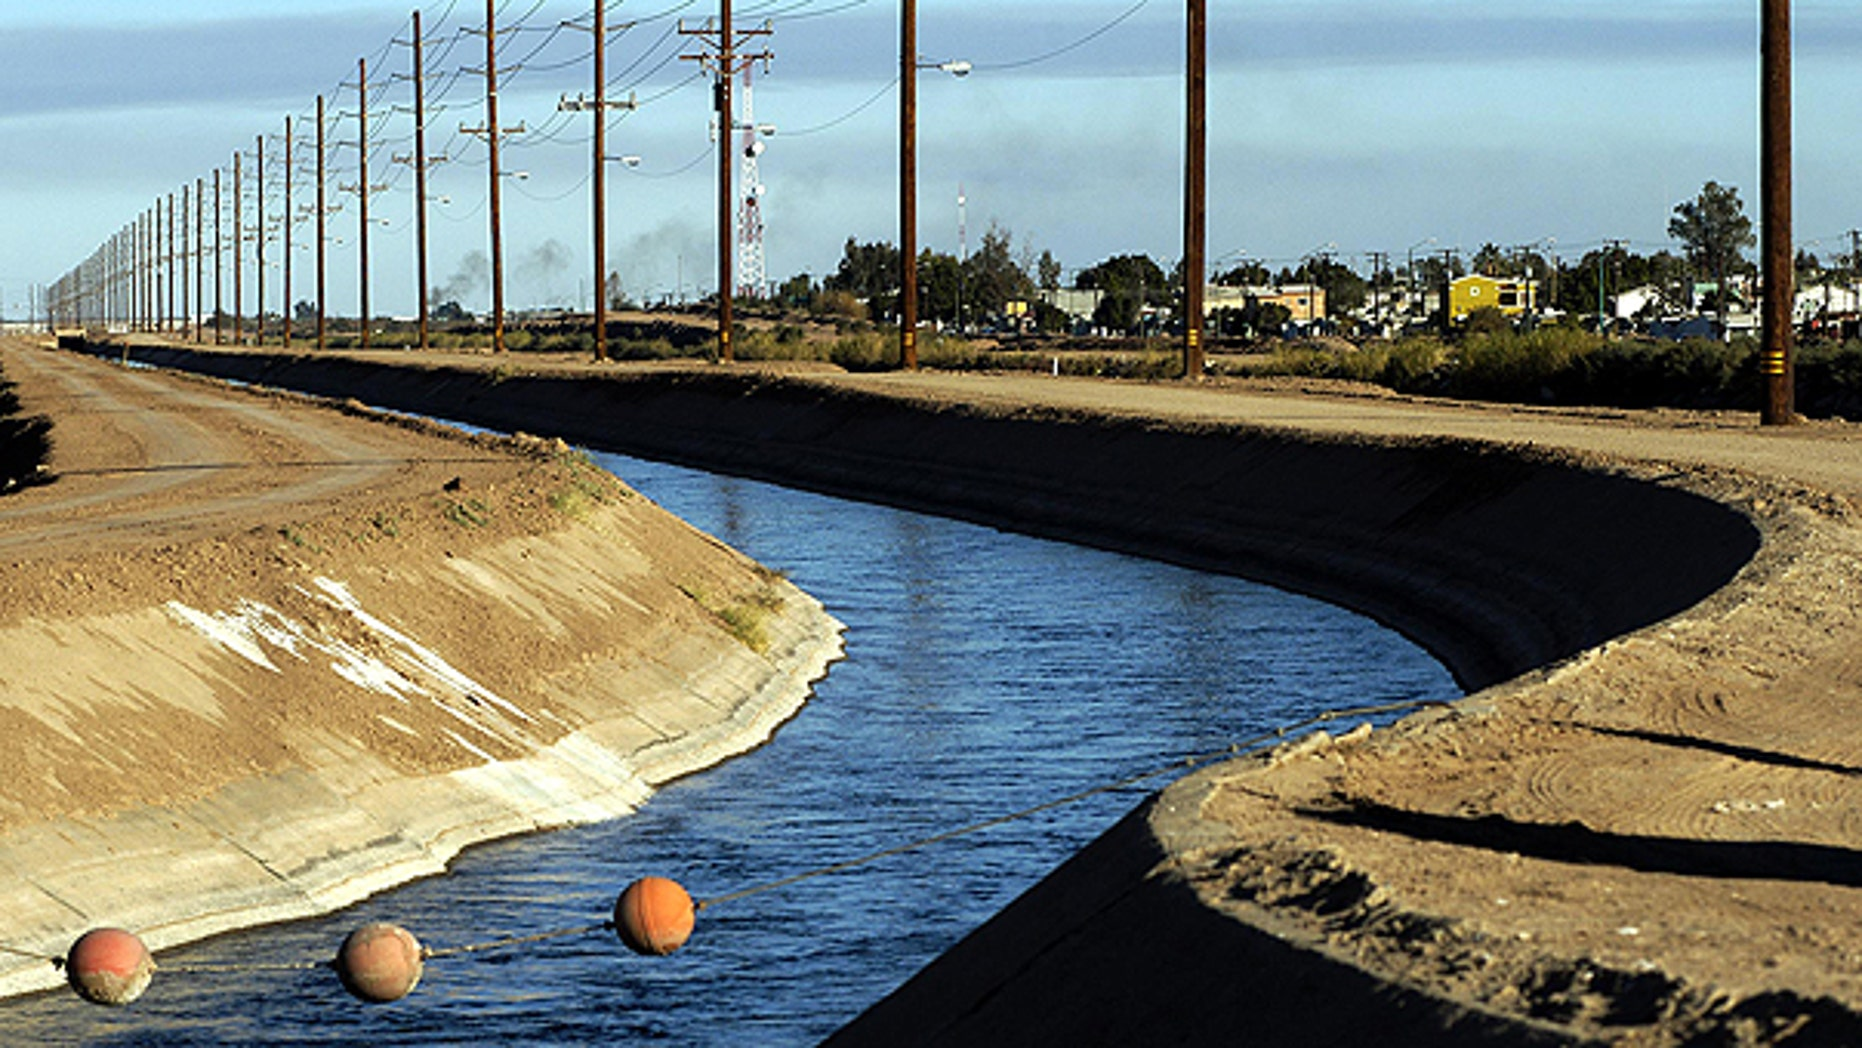 In this Dec. 30, 2002 file photo, the All-American Canal runs along the United States border with Mexico near Calexico, Calif.